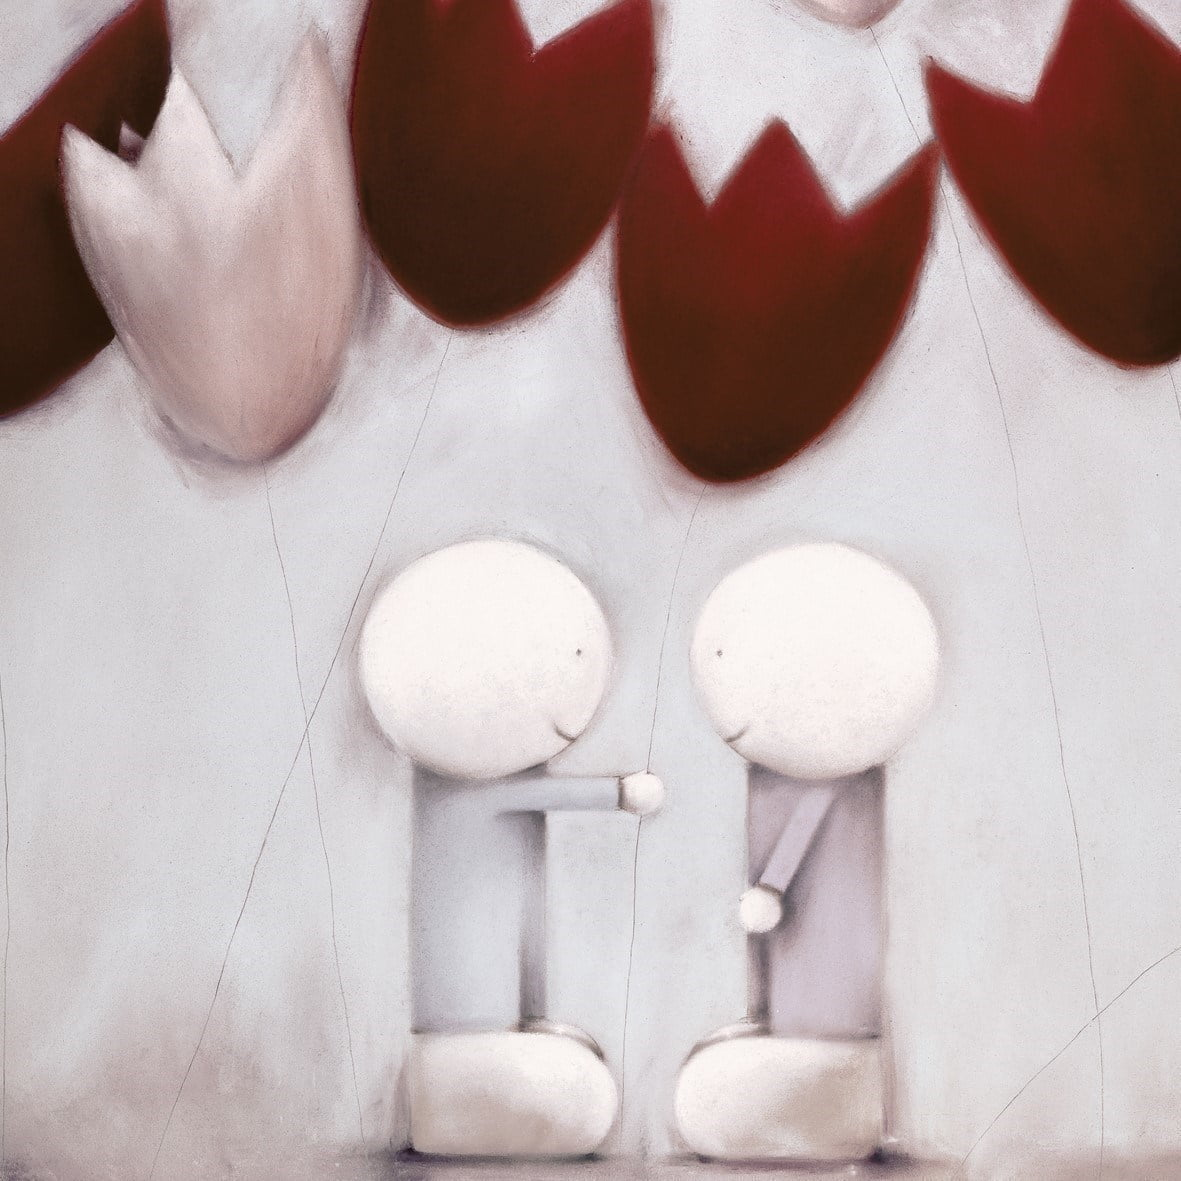 A small token of love ~ Doug Hyde